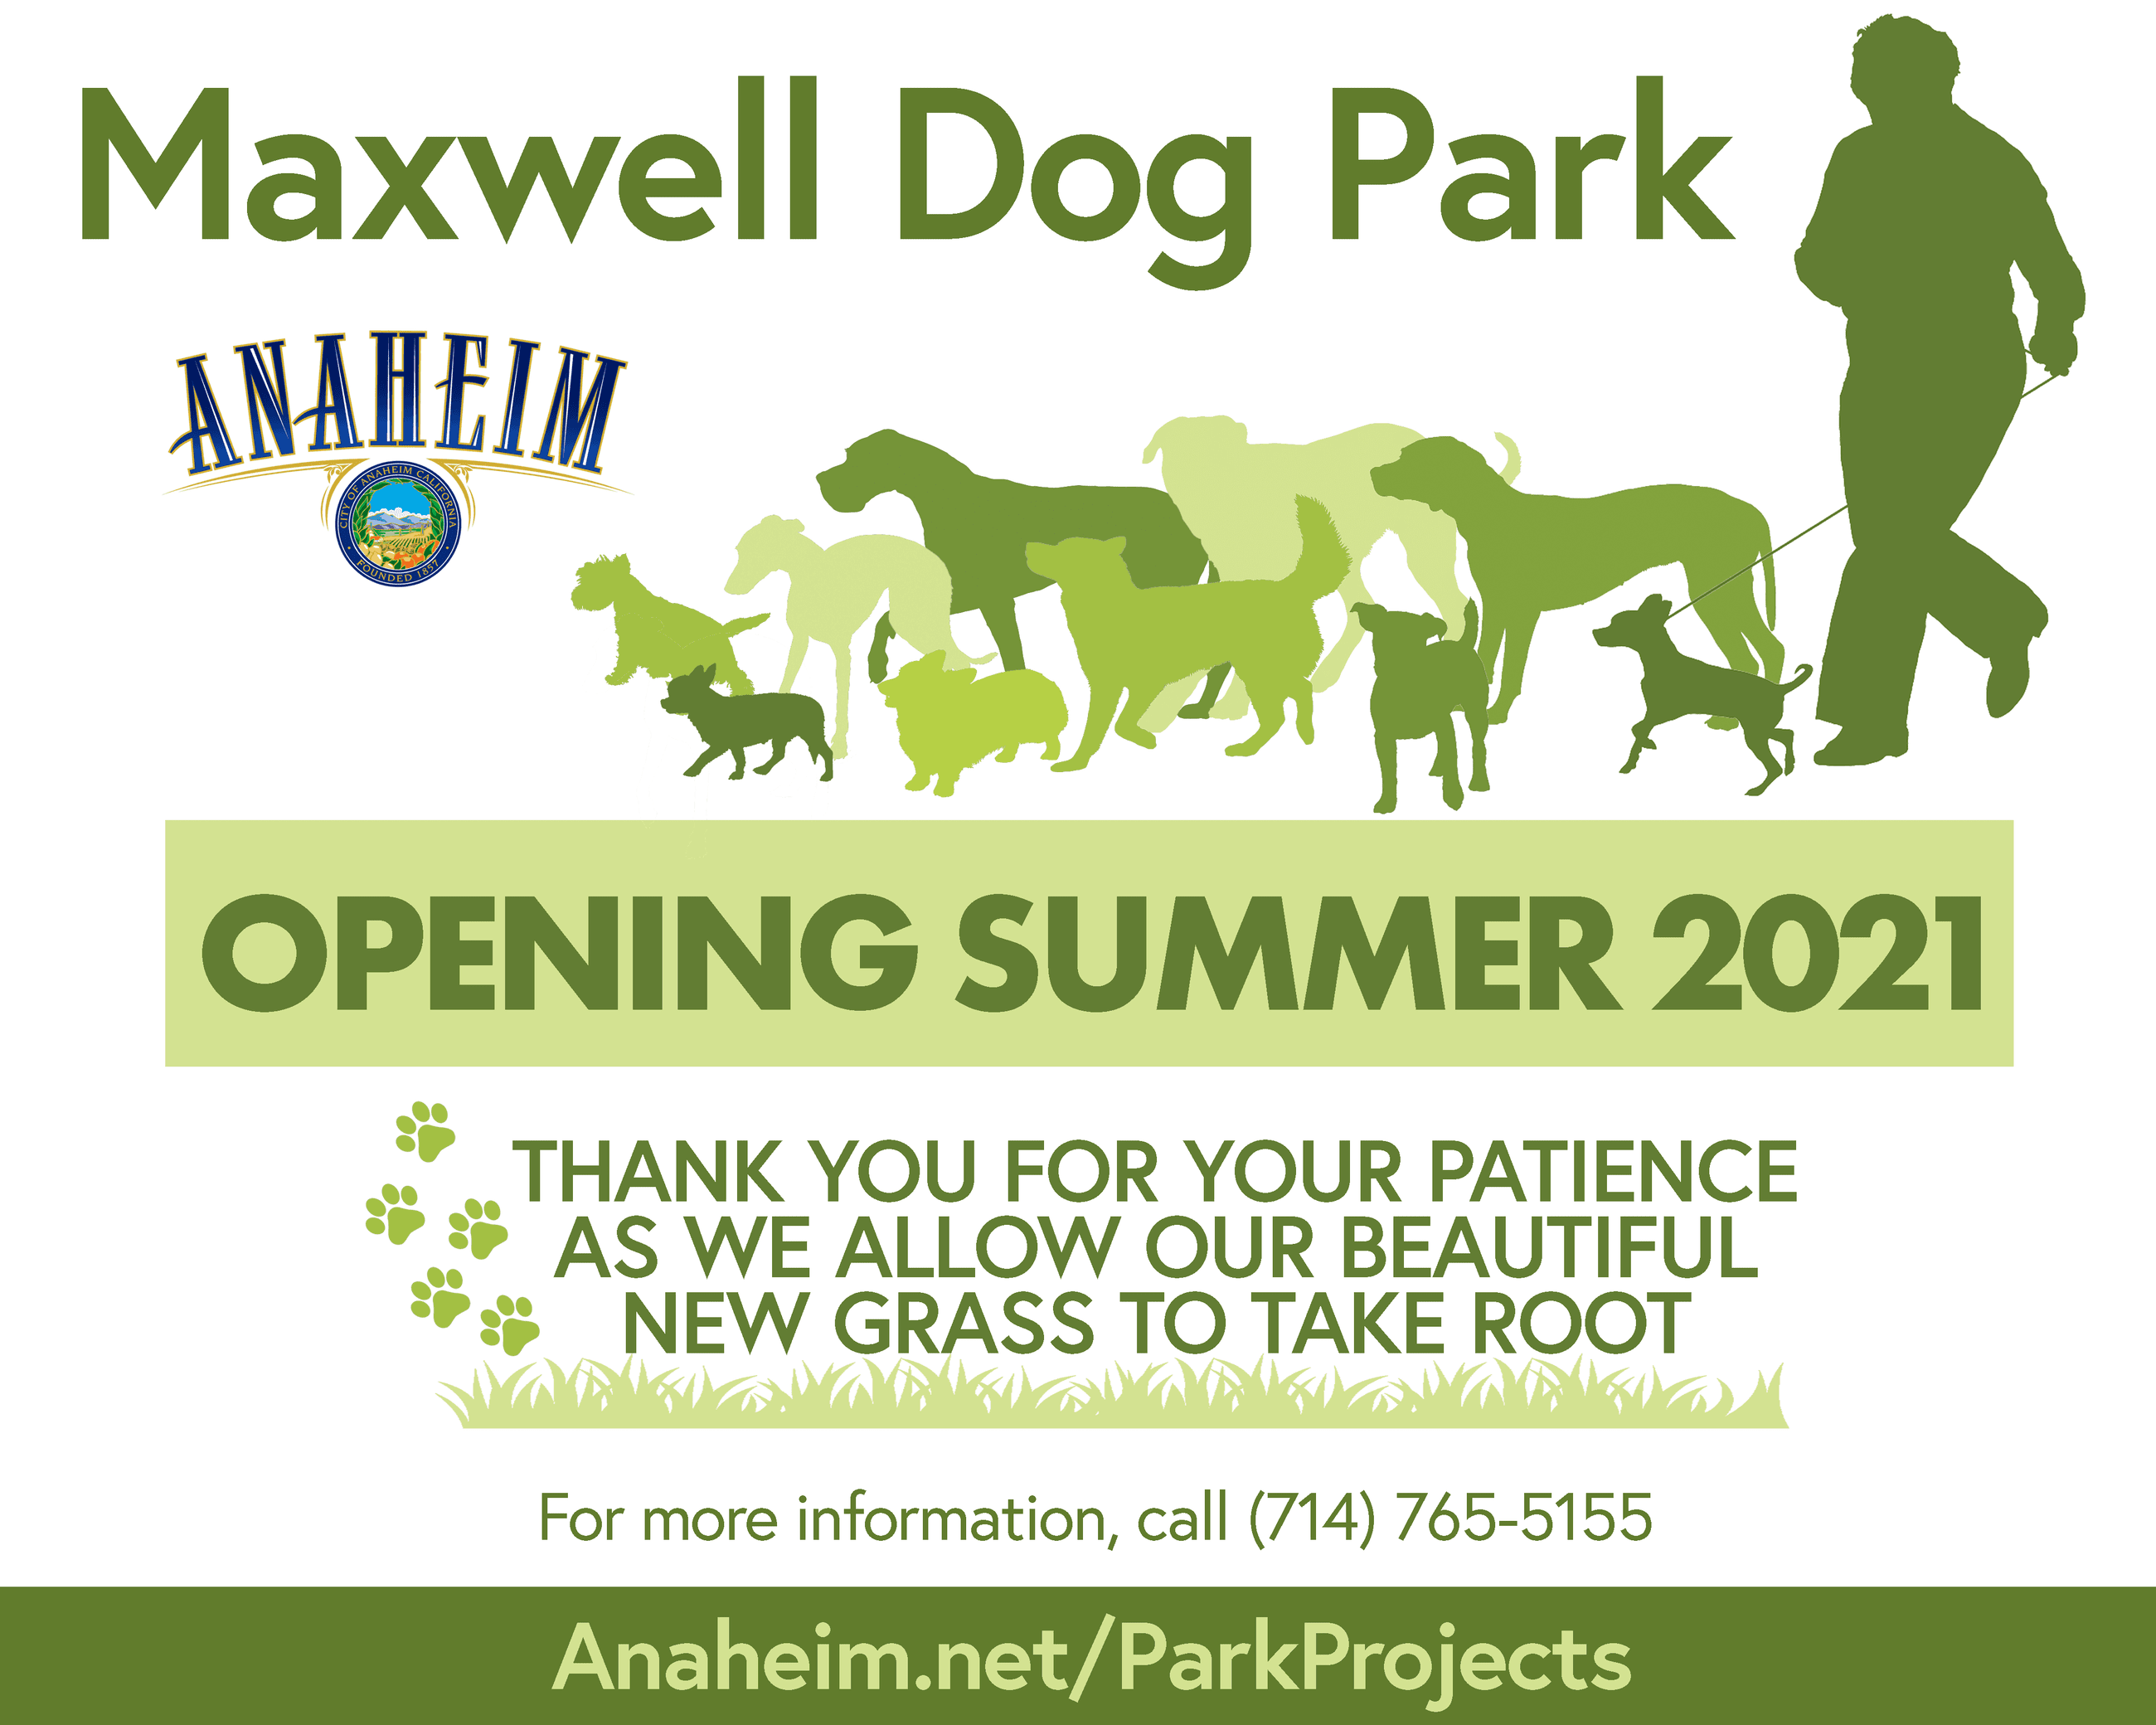 maxwell dog park coming soon_Summer